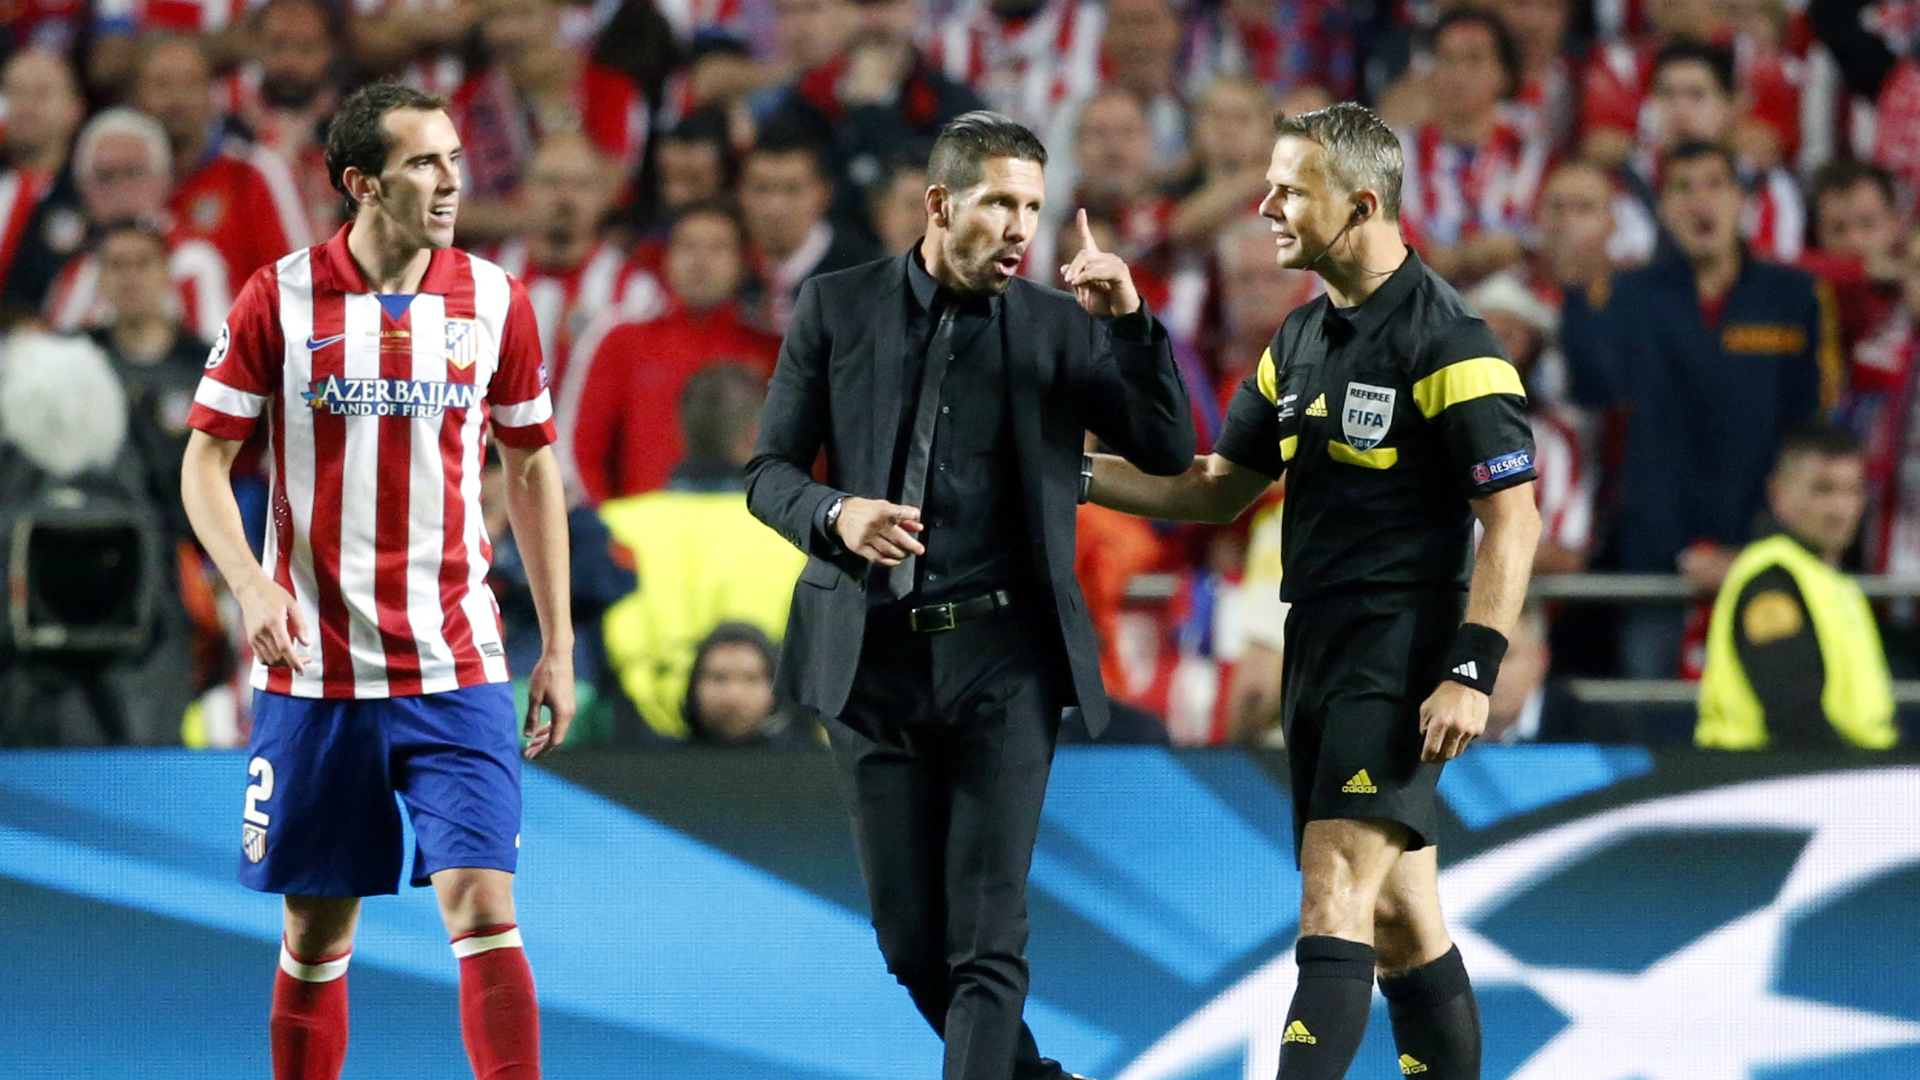 Diego Godín Diego Simeone Björn Kuipers Atletico Madrid Real Madrid Champions League 2014